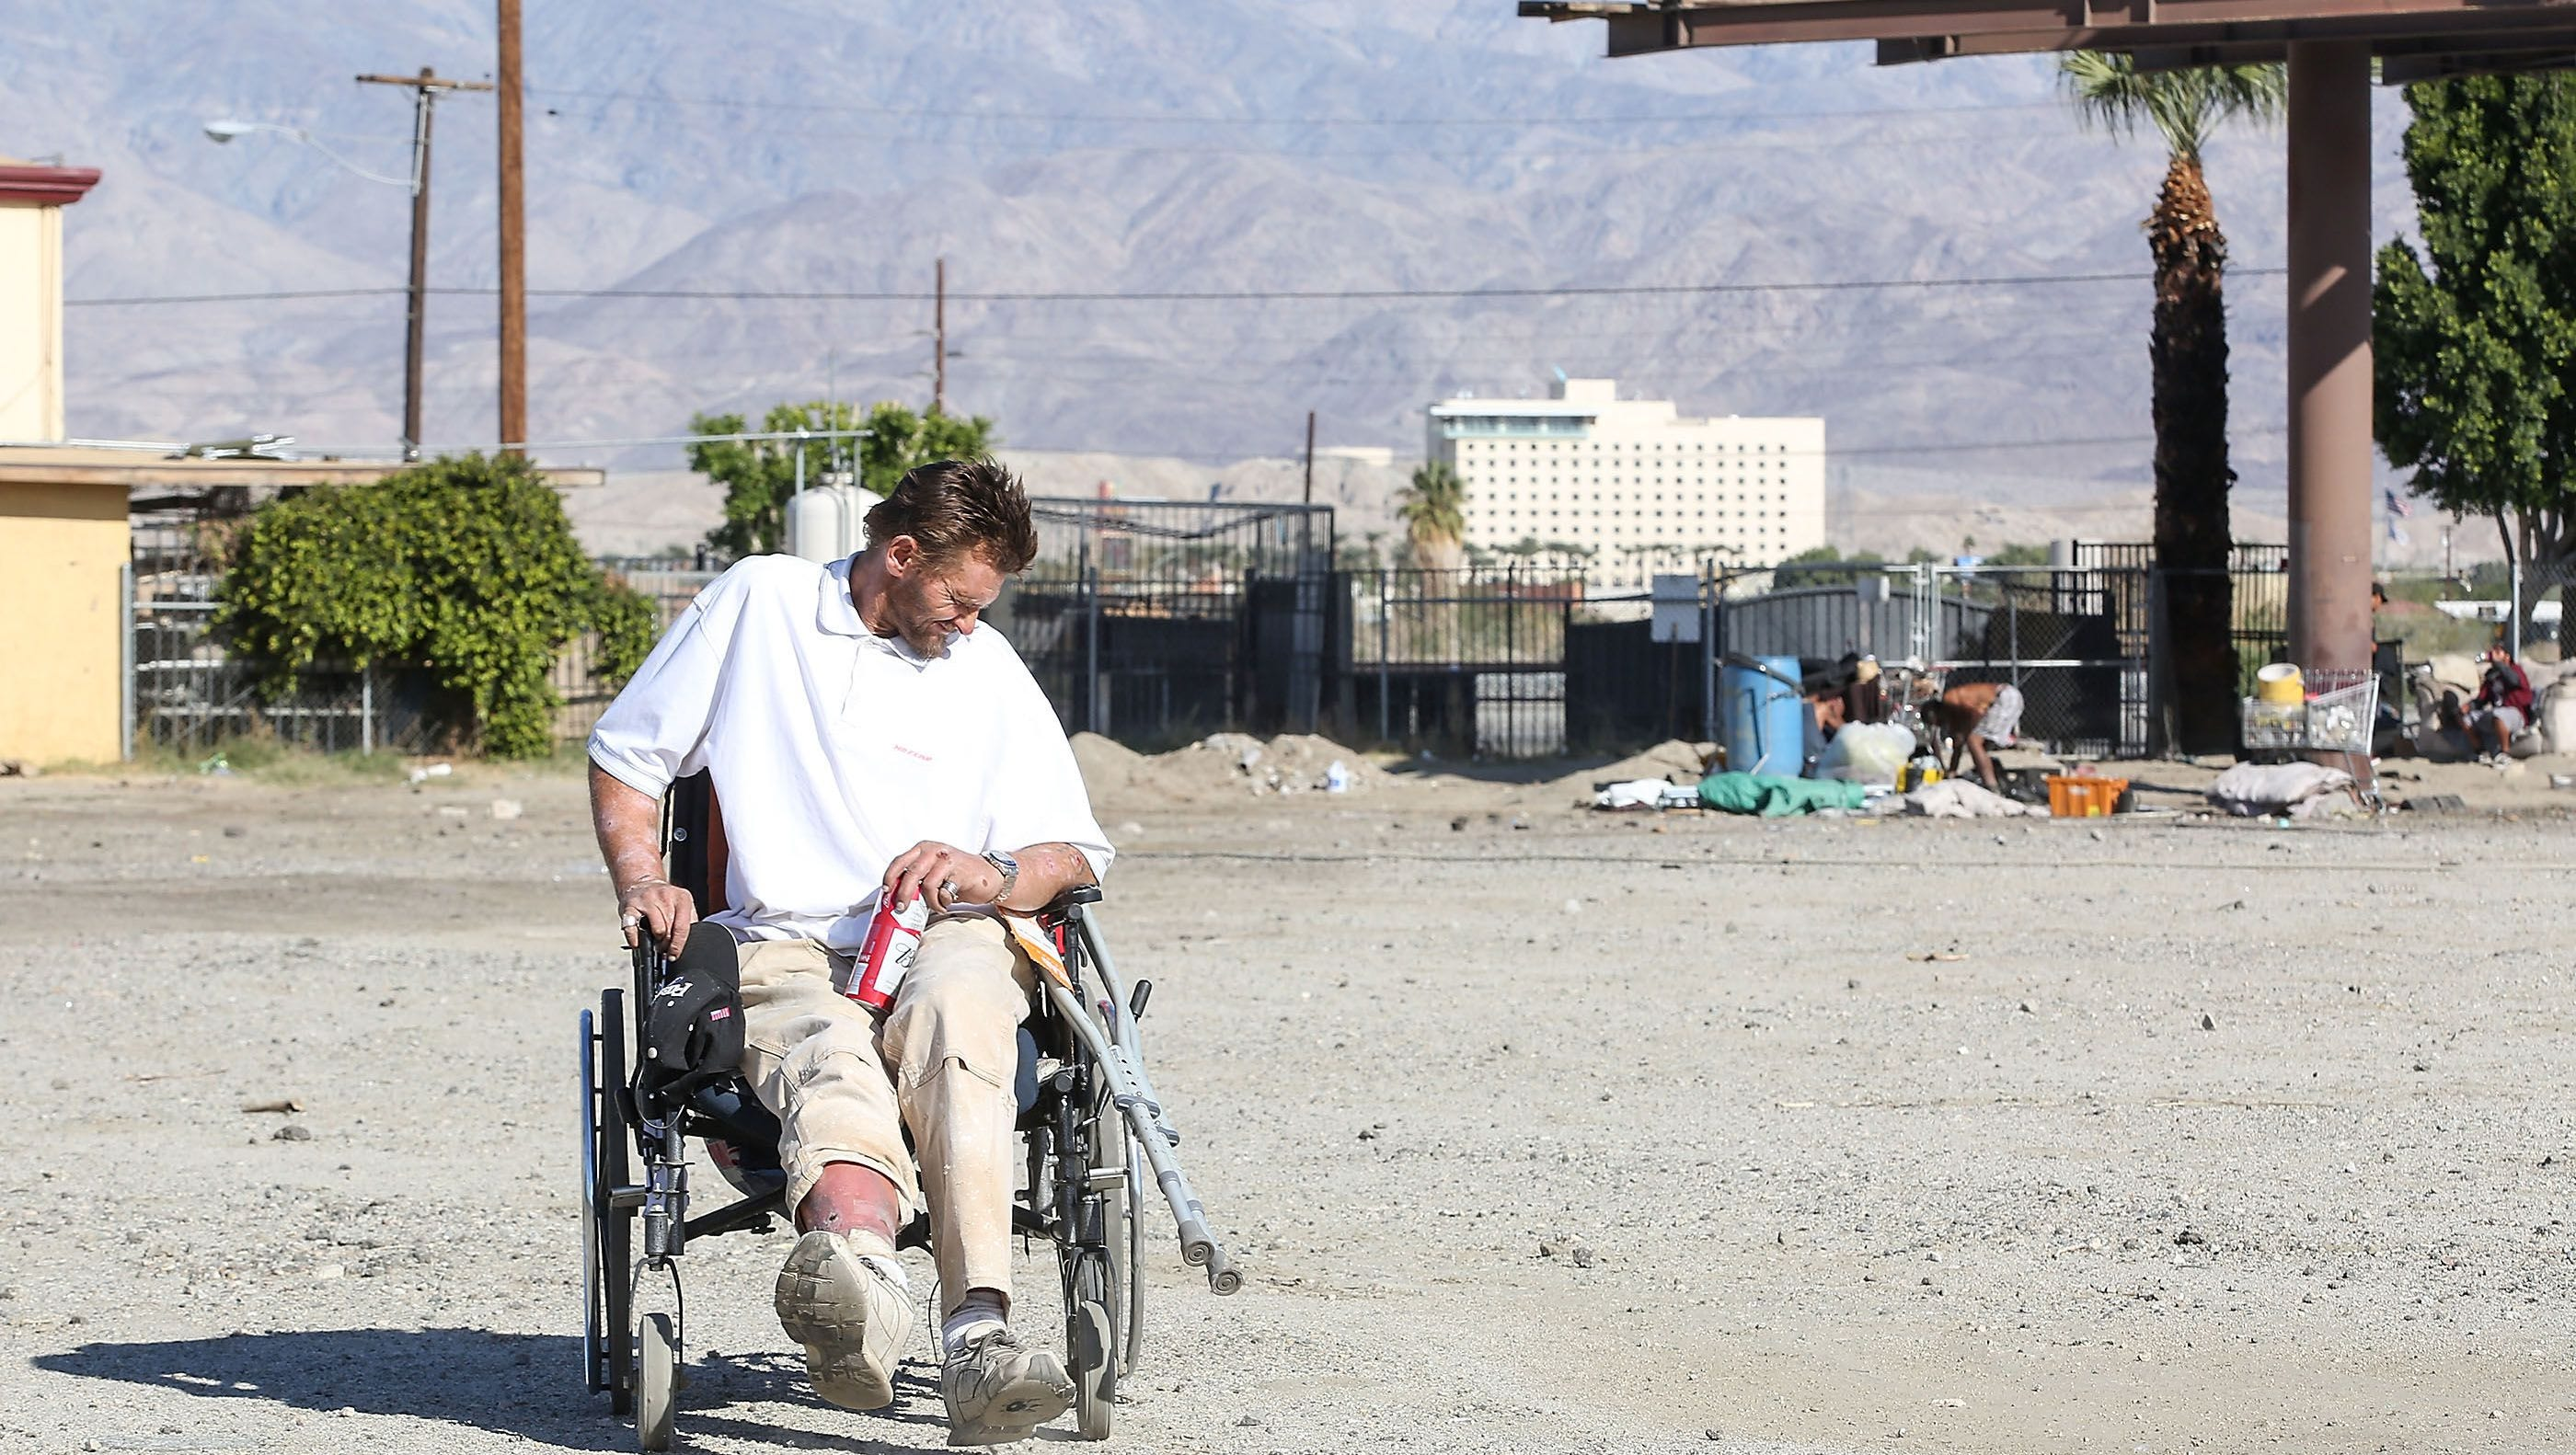 Homeless in the valley: 55% of Coachella Valley homeless struggle with addiction